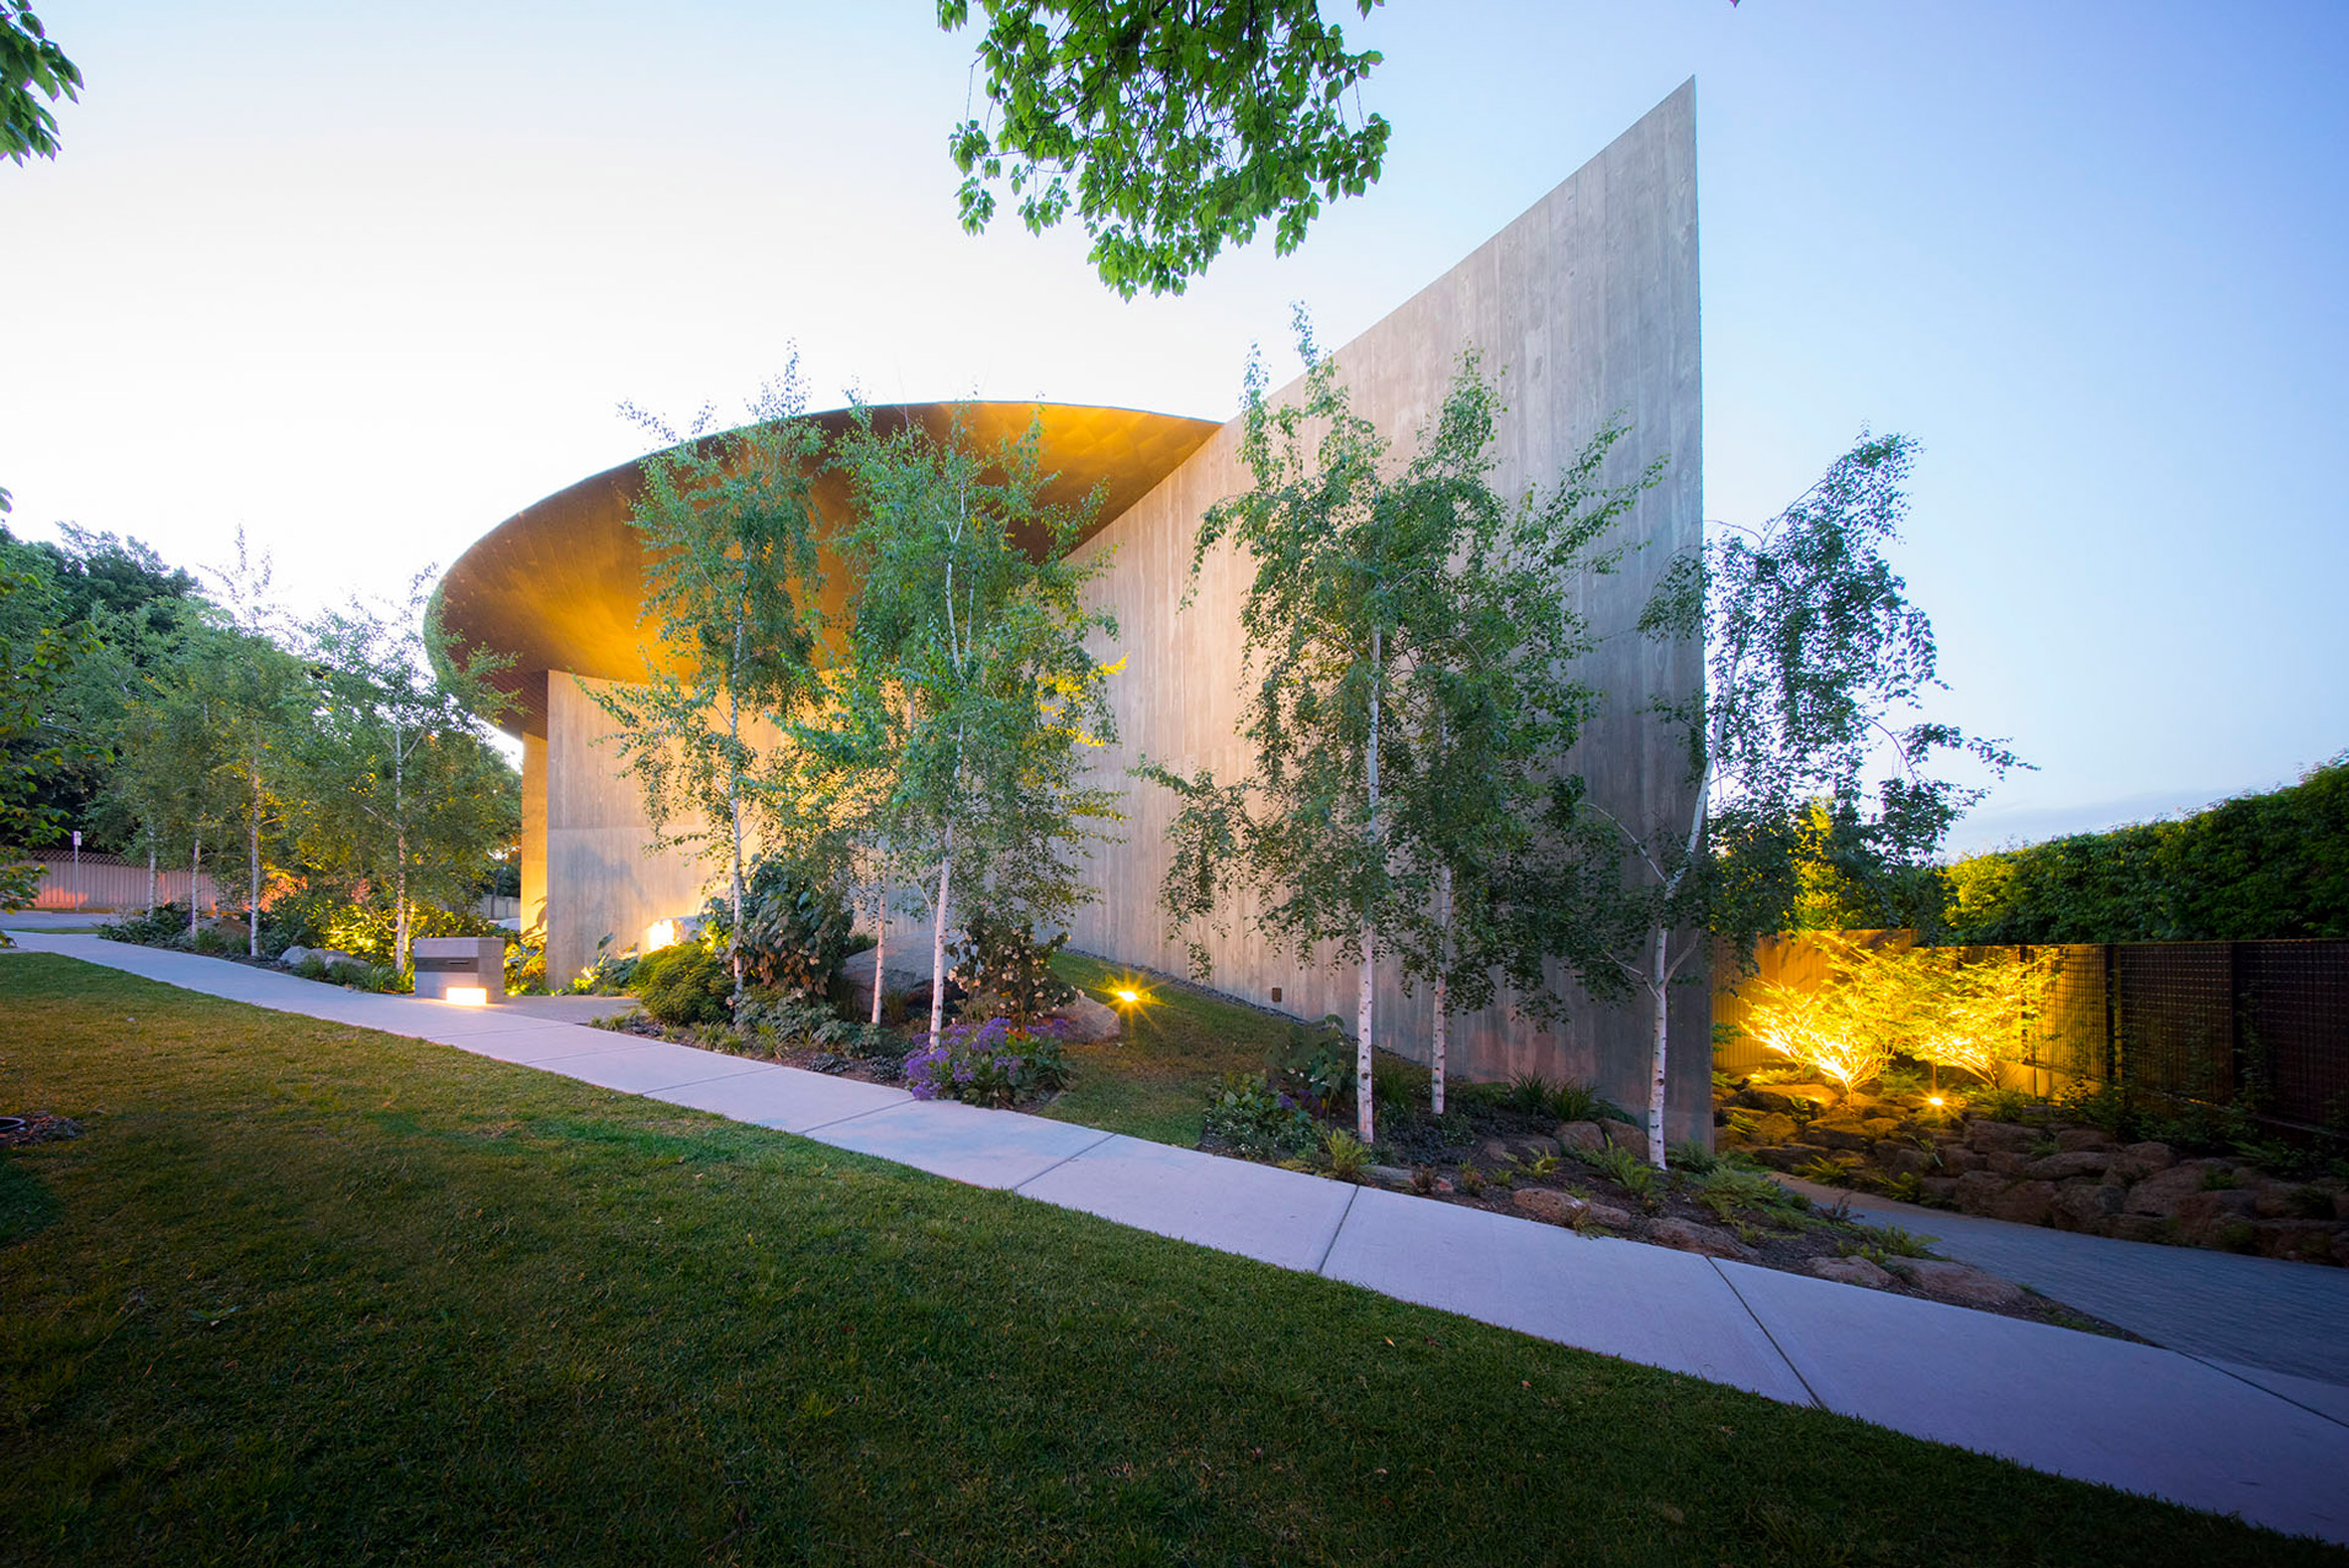 Wood Marsh tops curving concrete walls with zinc disc for